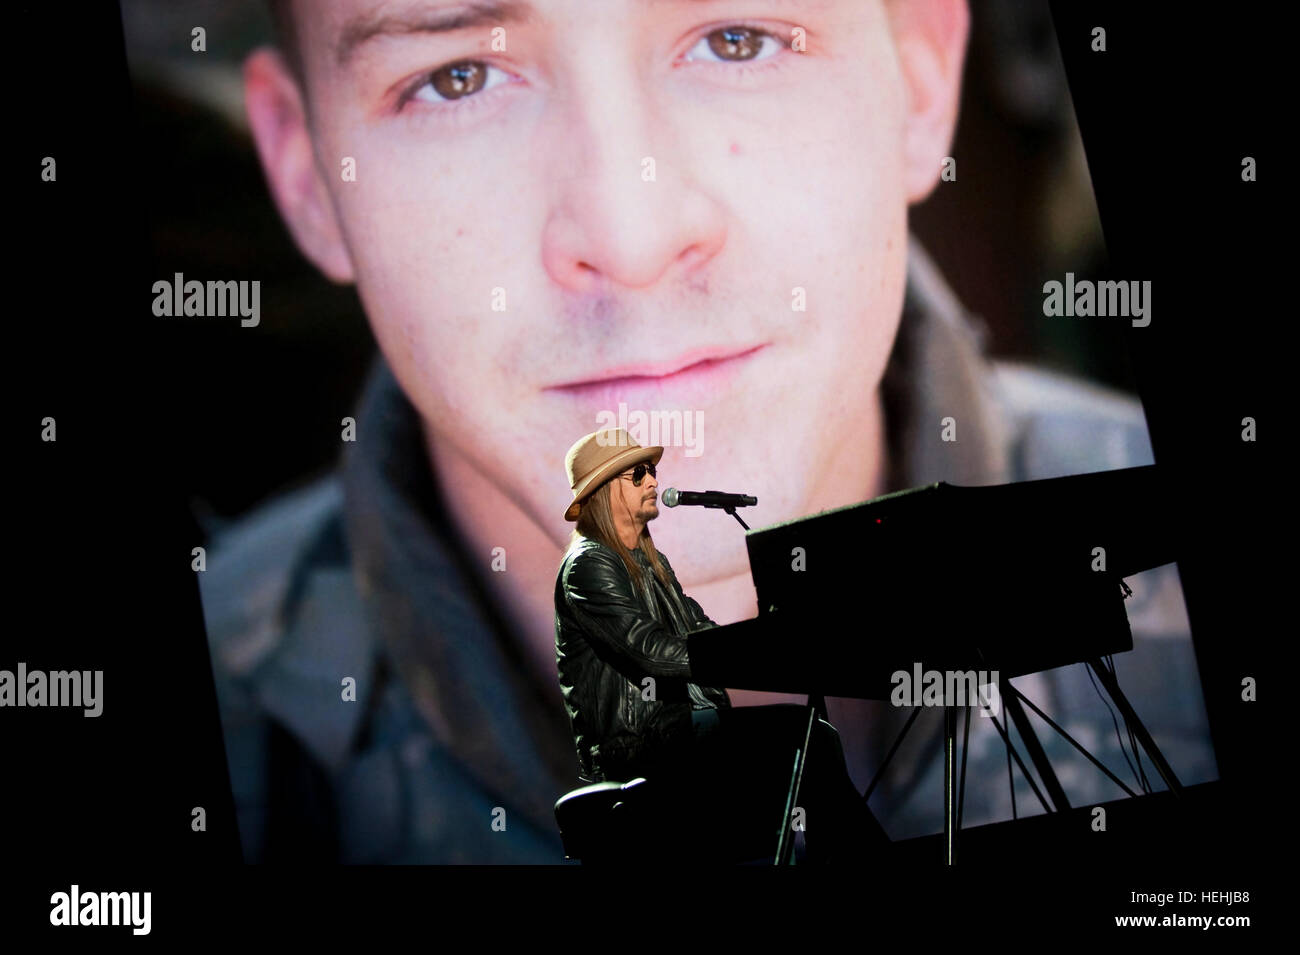 Musician and singer Kid Rock performs at the Robin Hood Foundation Gala at the Jacob Javits Convention Center May - Stock Image